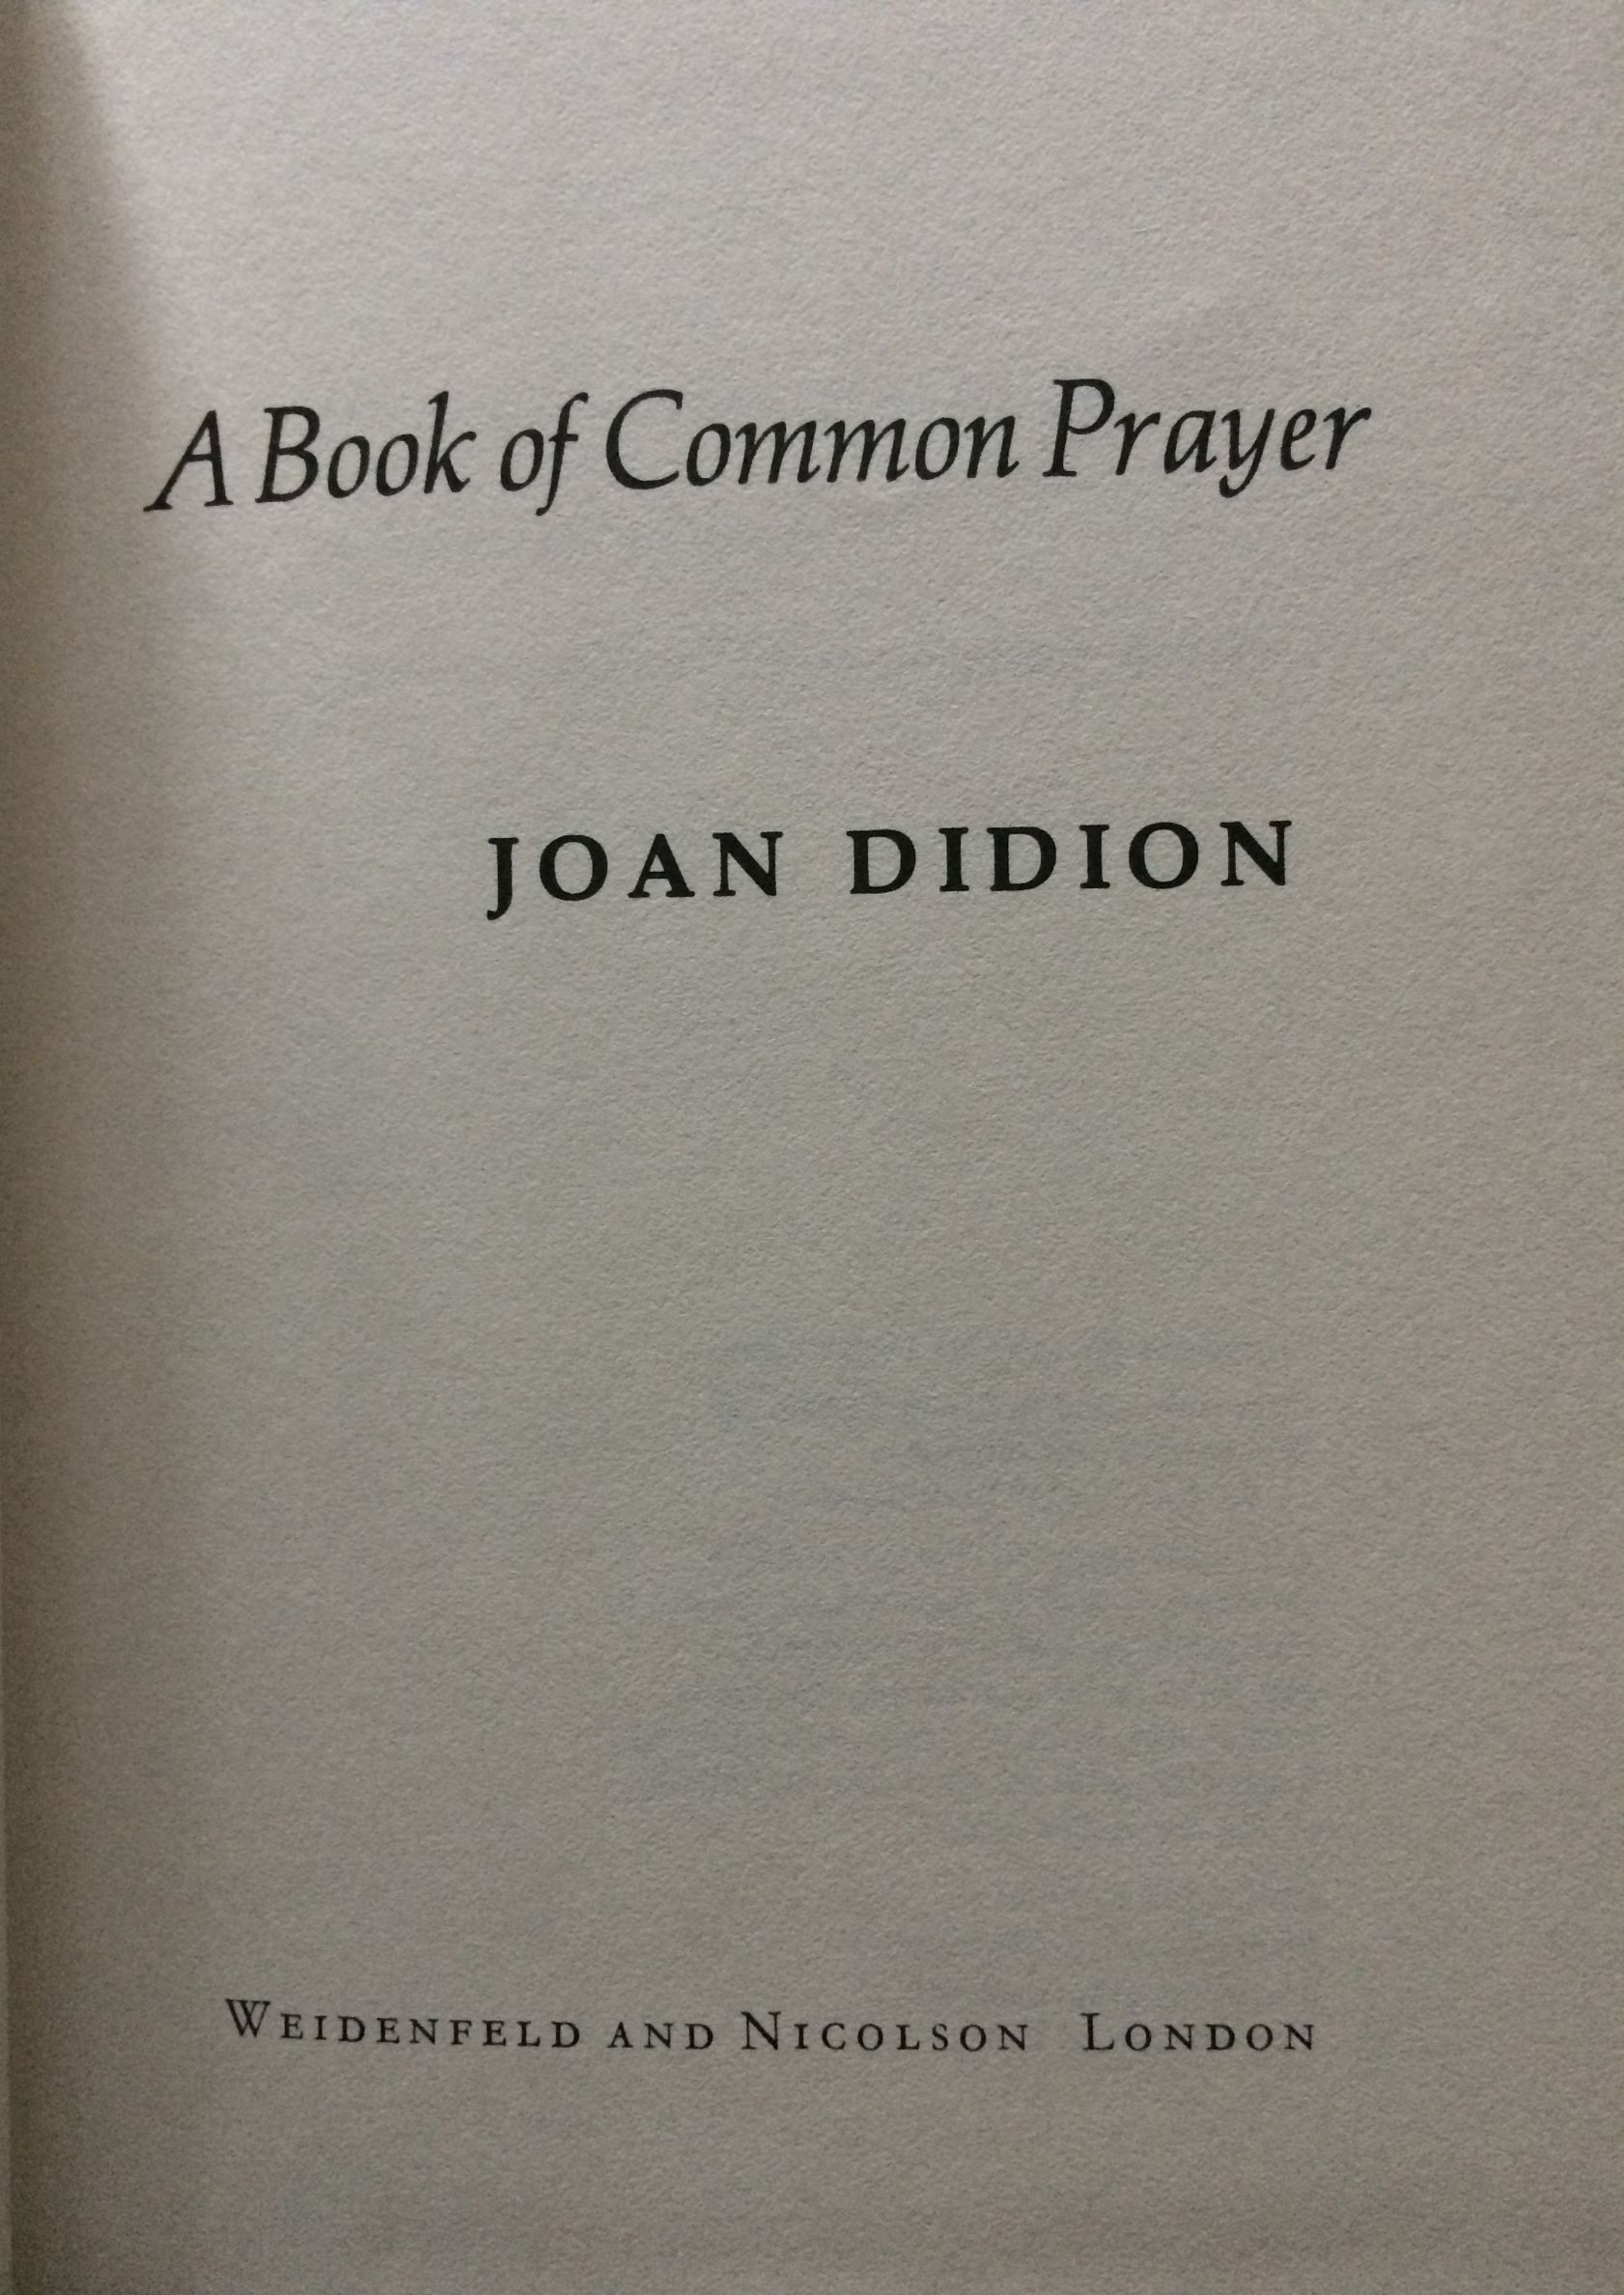 Image for A Book of Common Prayer.